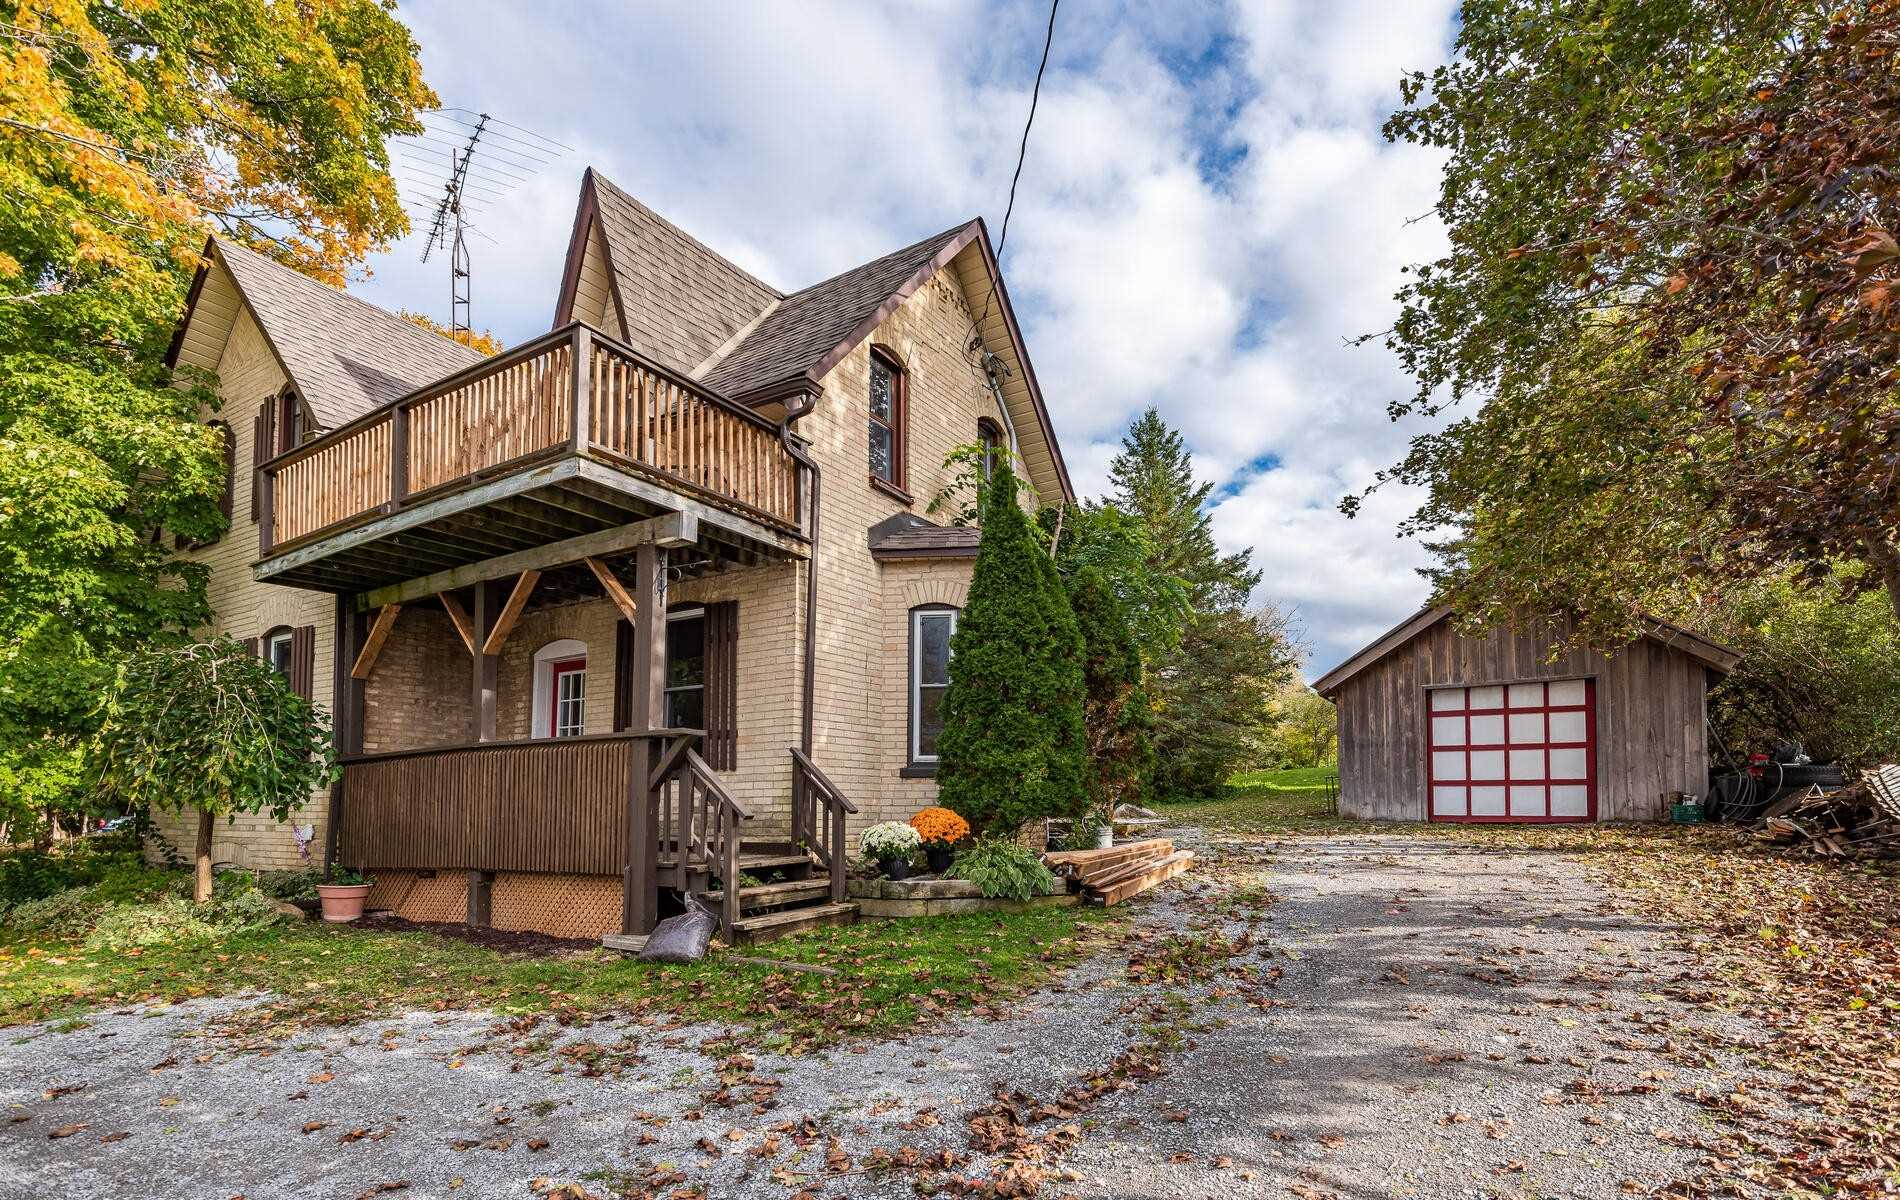 For Sale: 705 Ravenshoe Road, Uxbridge, ON | 2 Bed, 3 Bath House for $599000.00. See 33 photos!